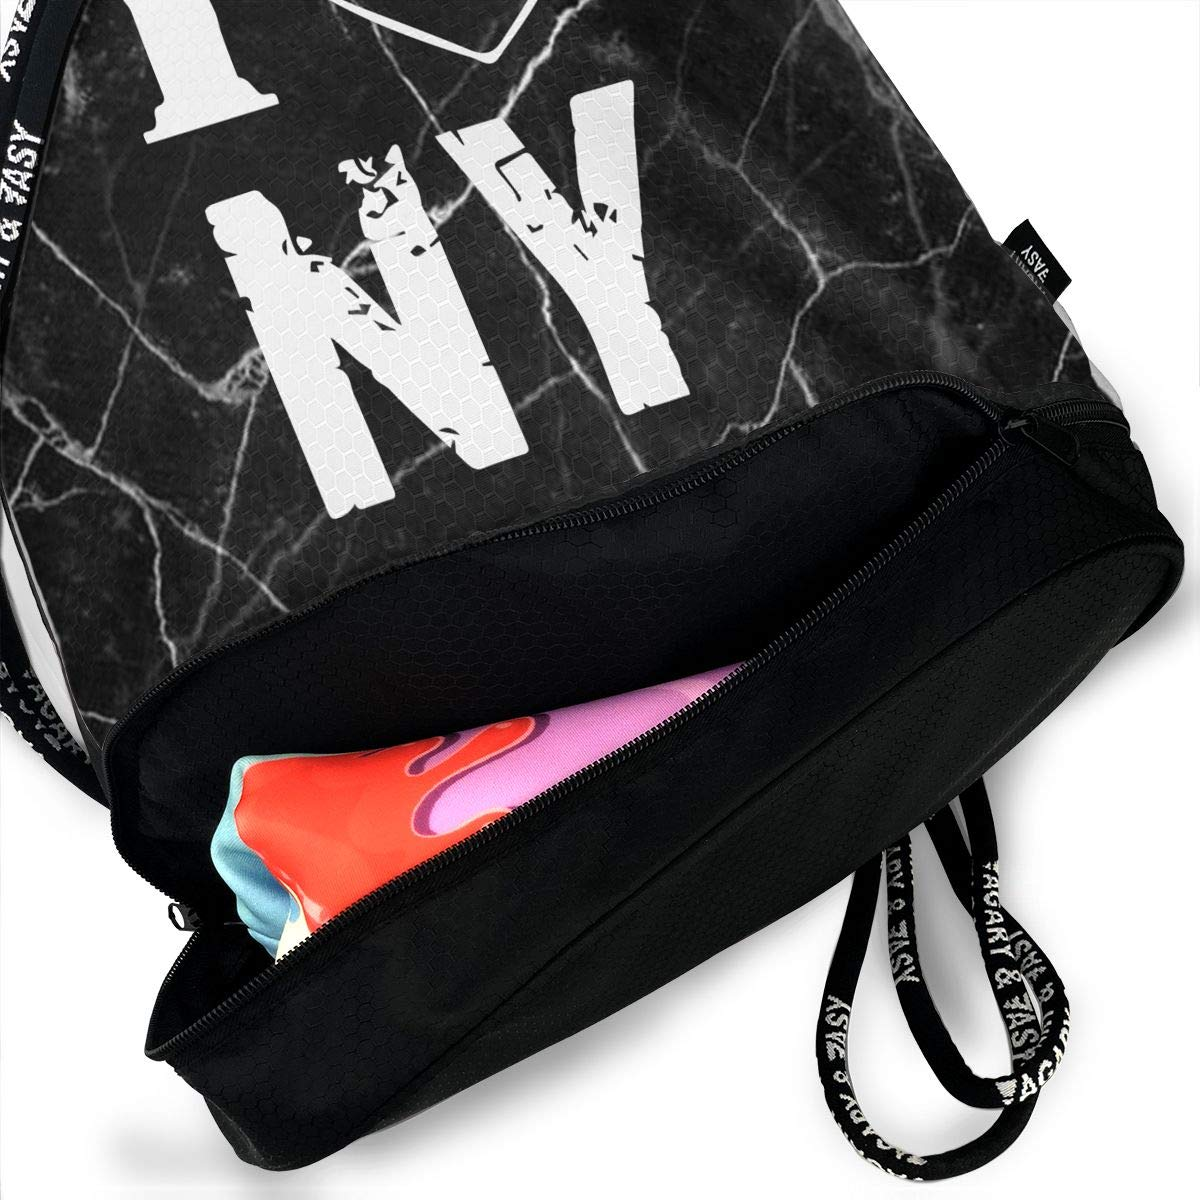 Drawstring Sports Backpack I Love NY Men Women Home Travel Shopping Shoulder Bags